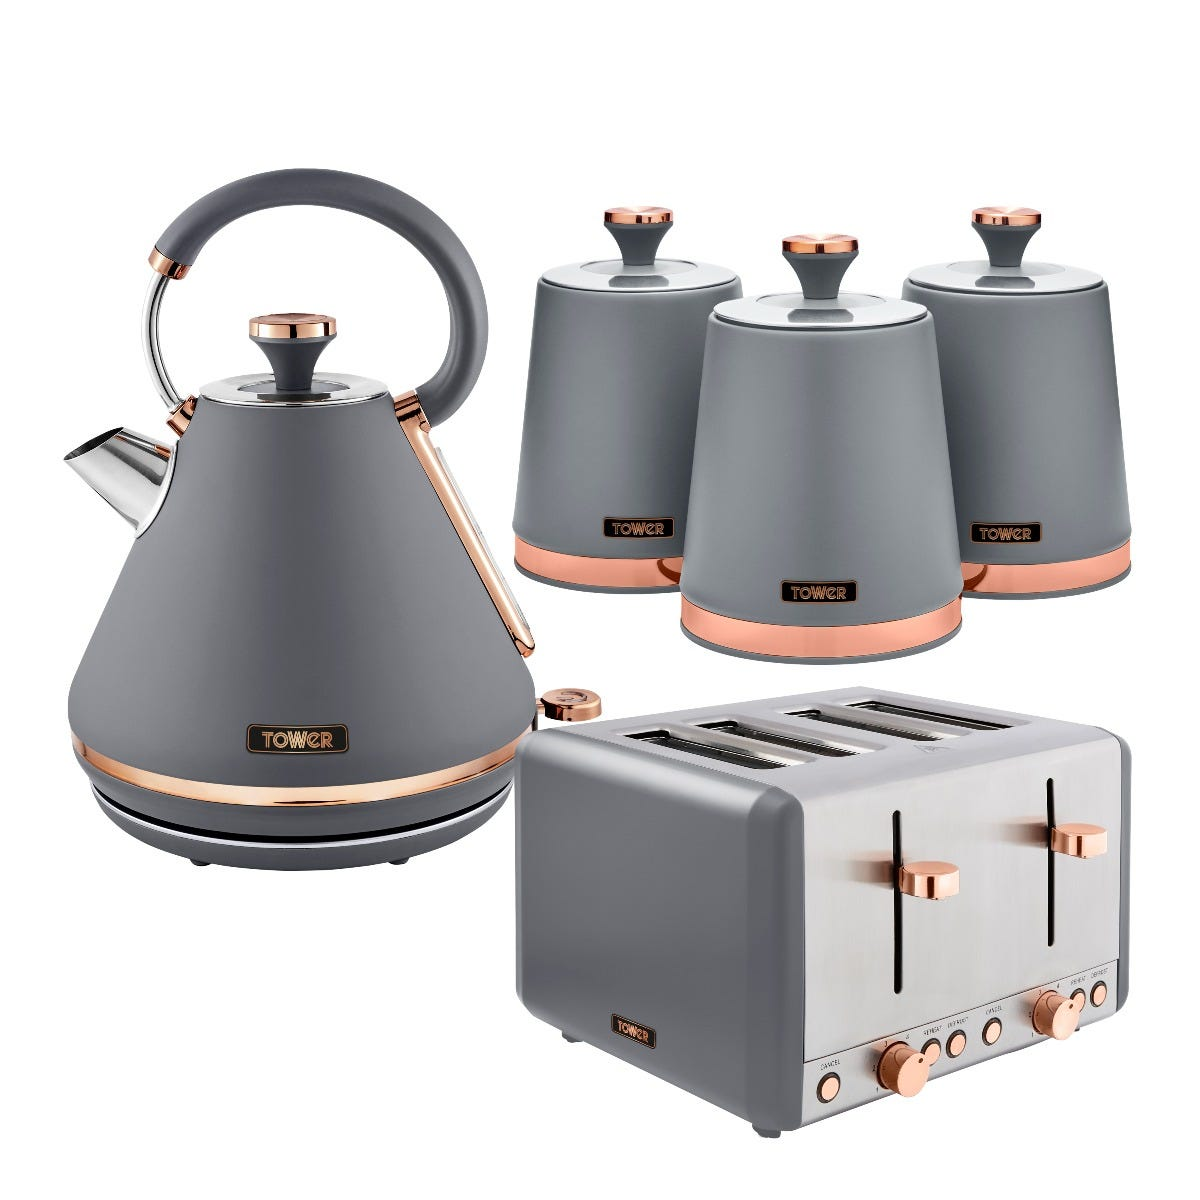 Tower Cavaletto 1.7L Kettle and 4 Slice Toaster Set with 3 Canisters - Grey